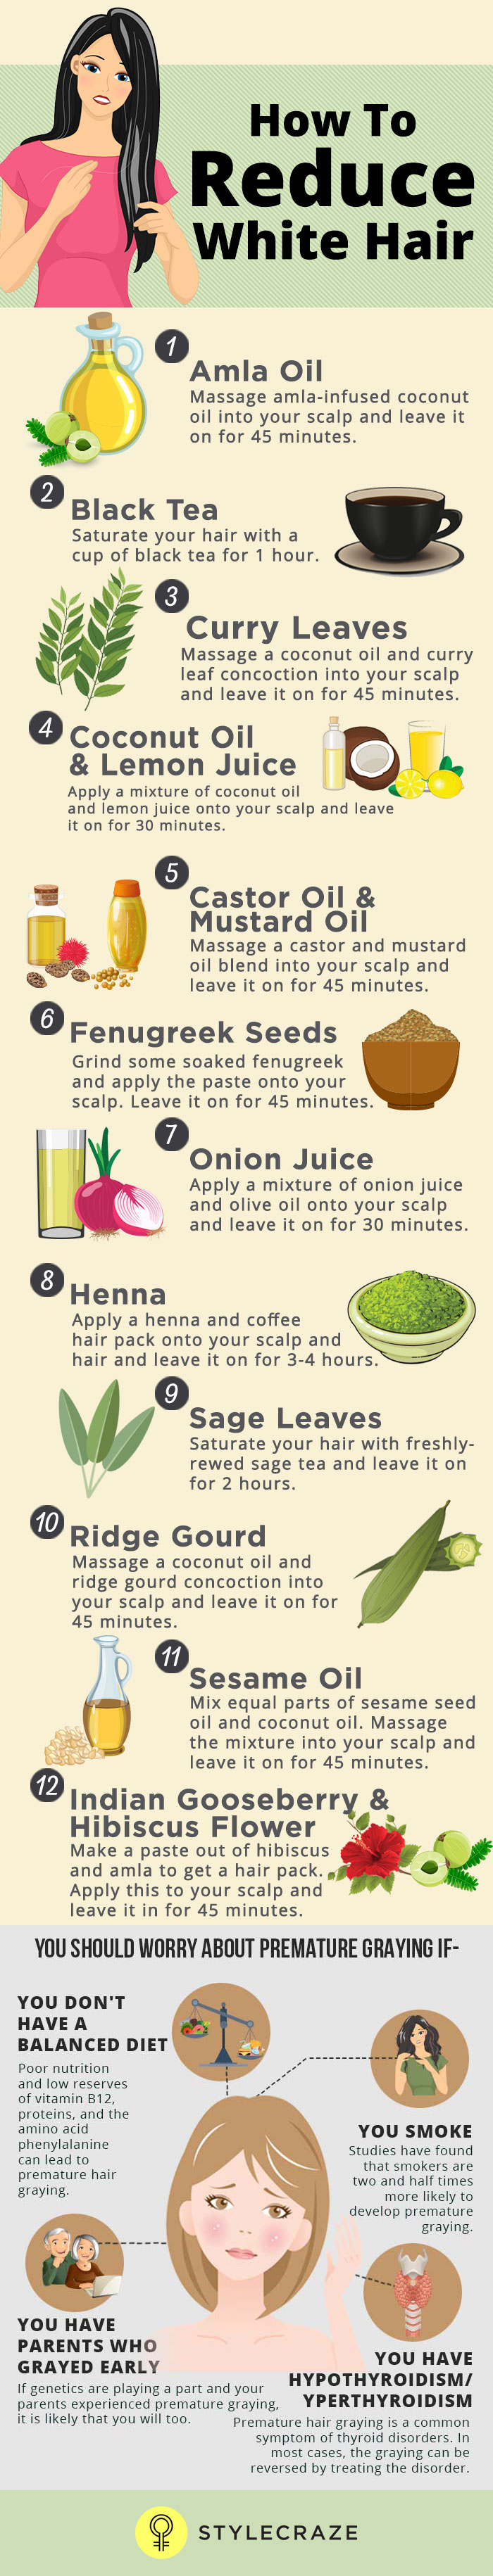 7 Causes And 12 Ways To Reduce White Hair Naturally